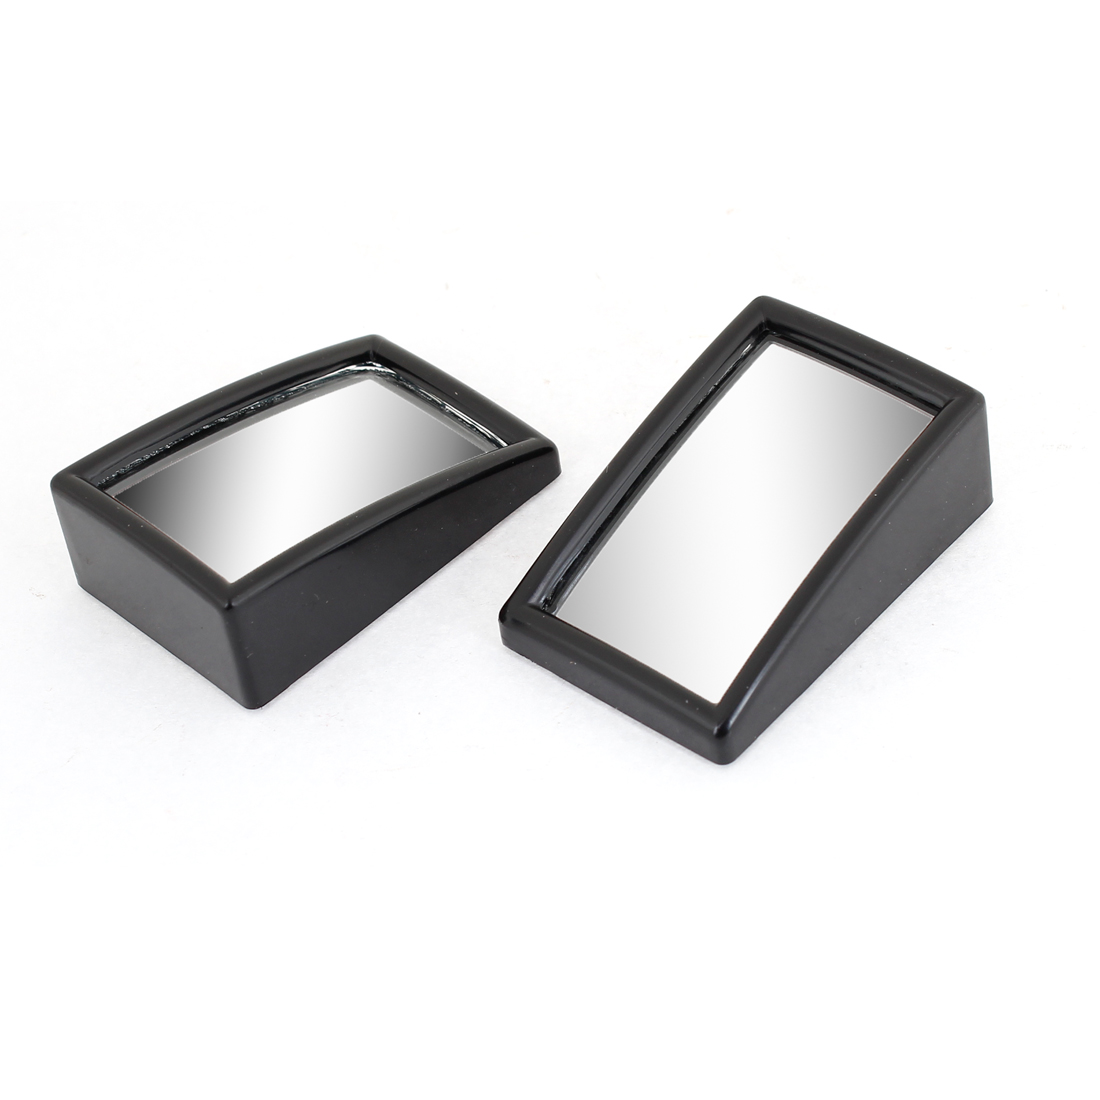 Pair 56 x 37mm Car Safety Stick On Rear View Blind Spot Mirror Black